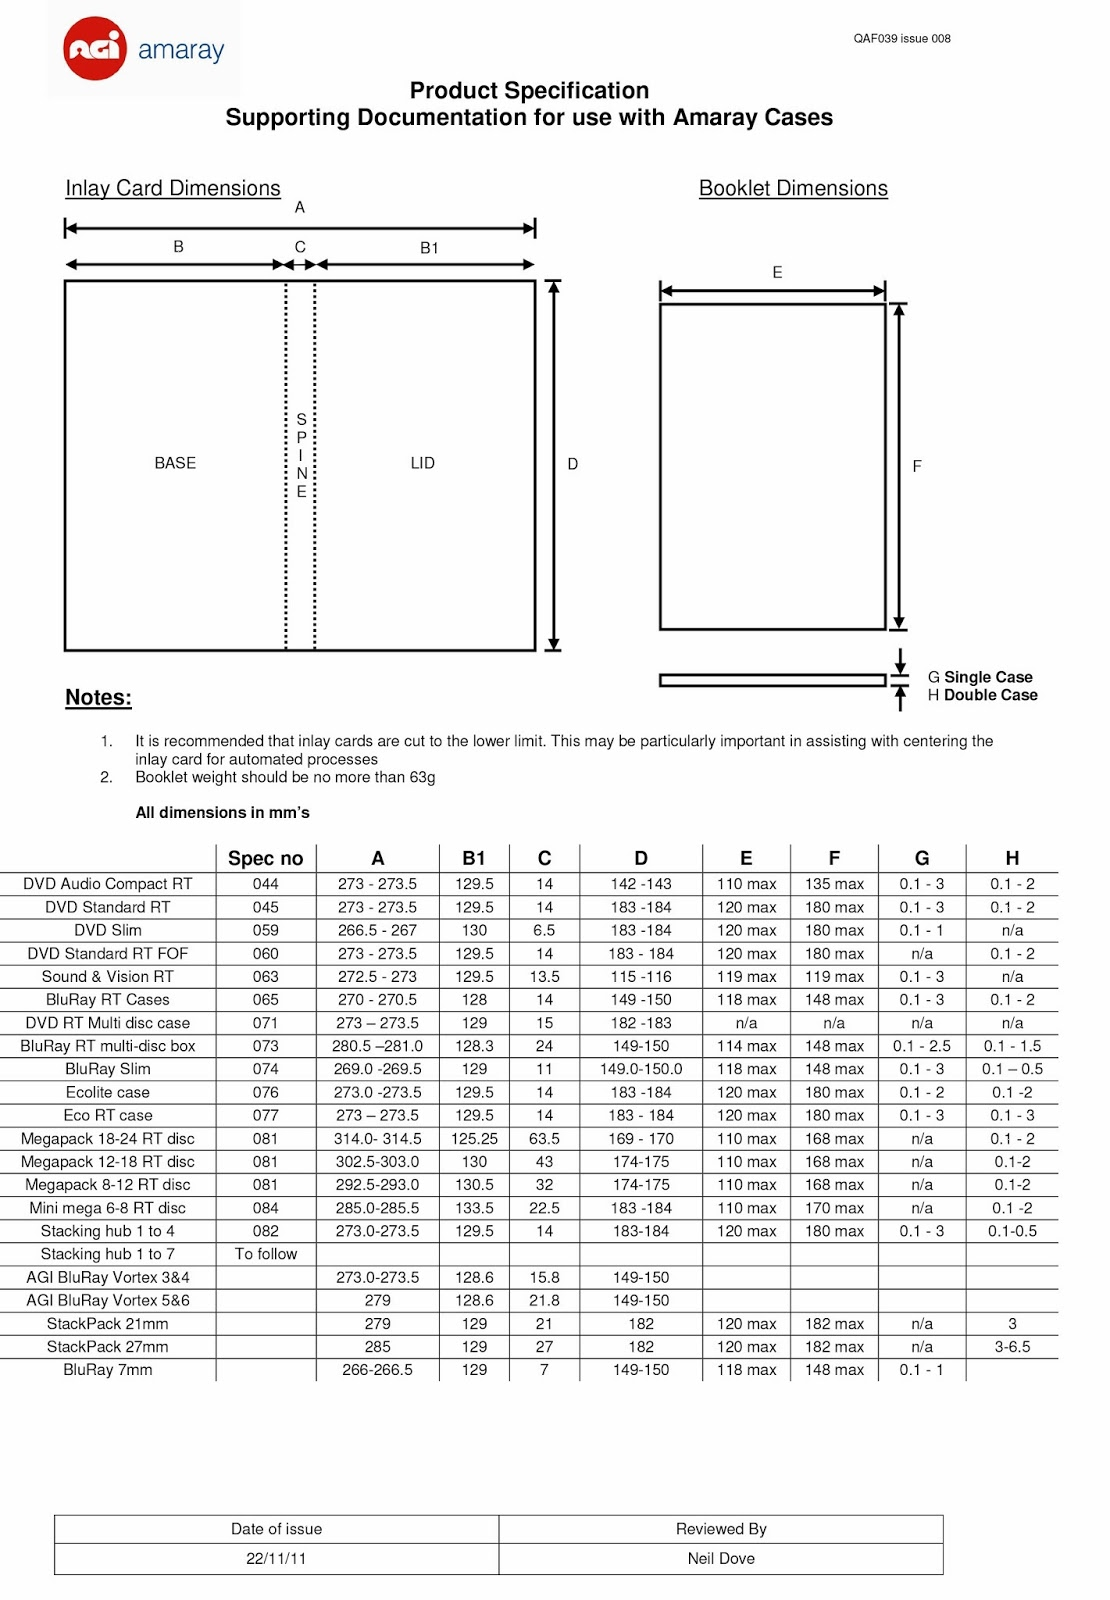 Digital Imaging Software 1340531: Research on DVD Inlay size.